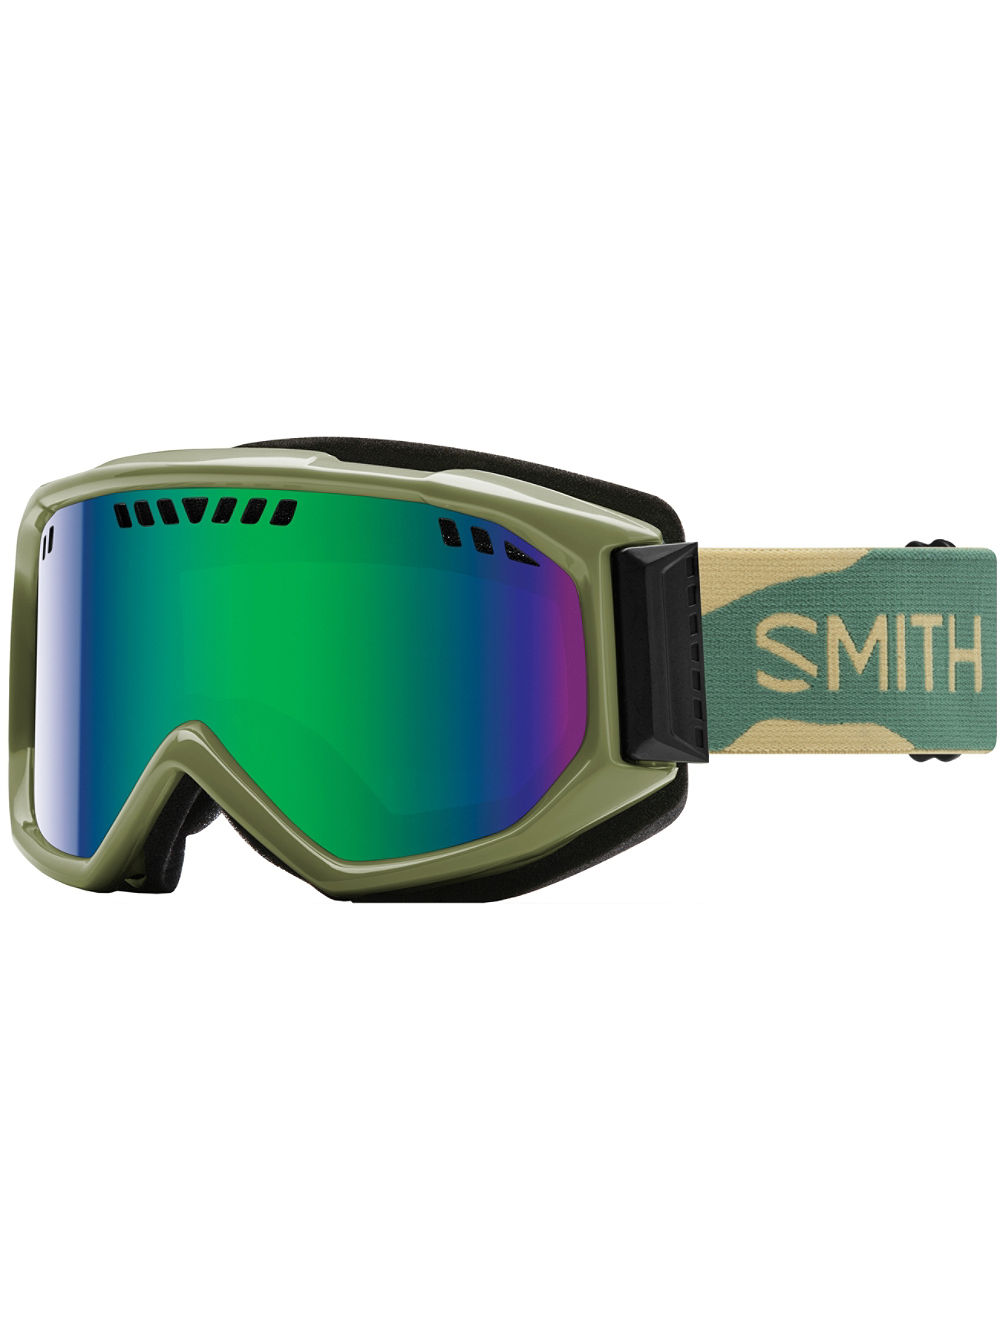 Scope Pro Camo Goggle